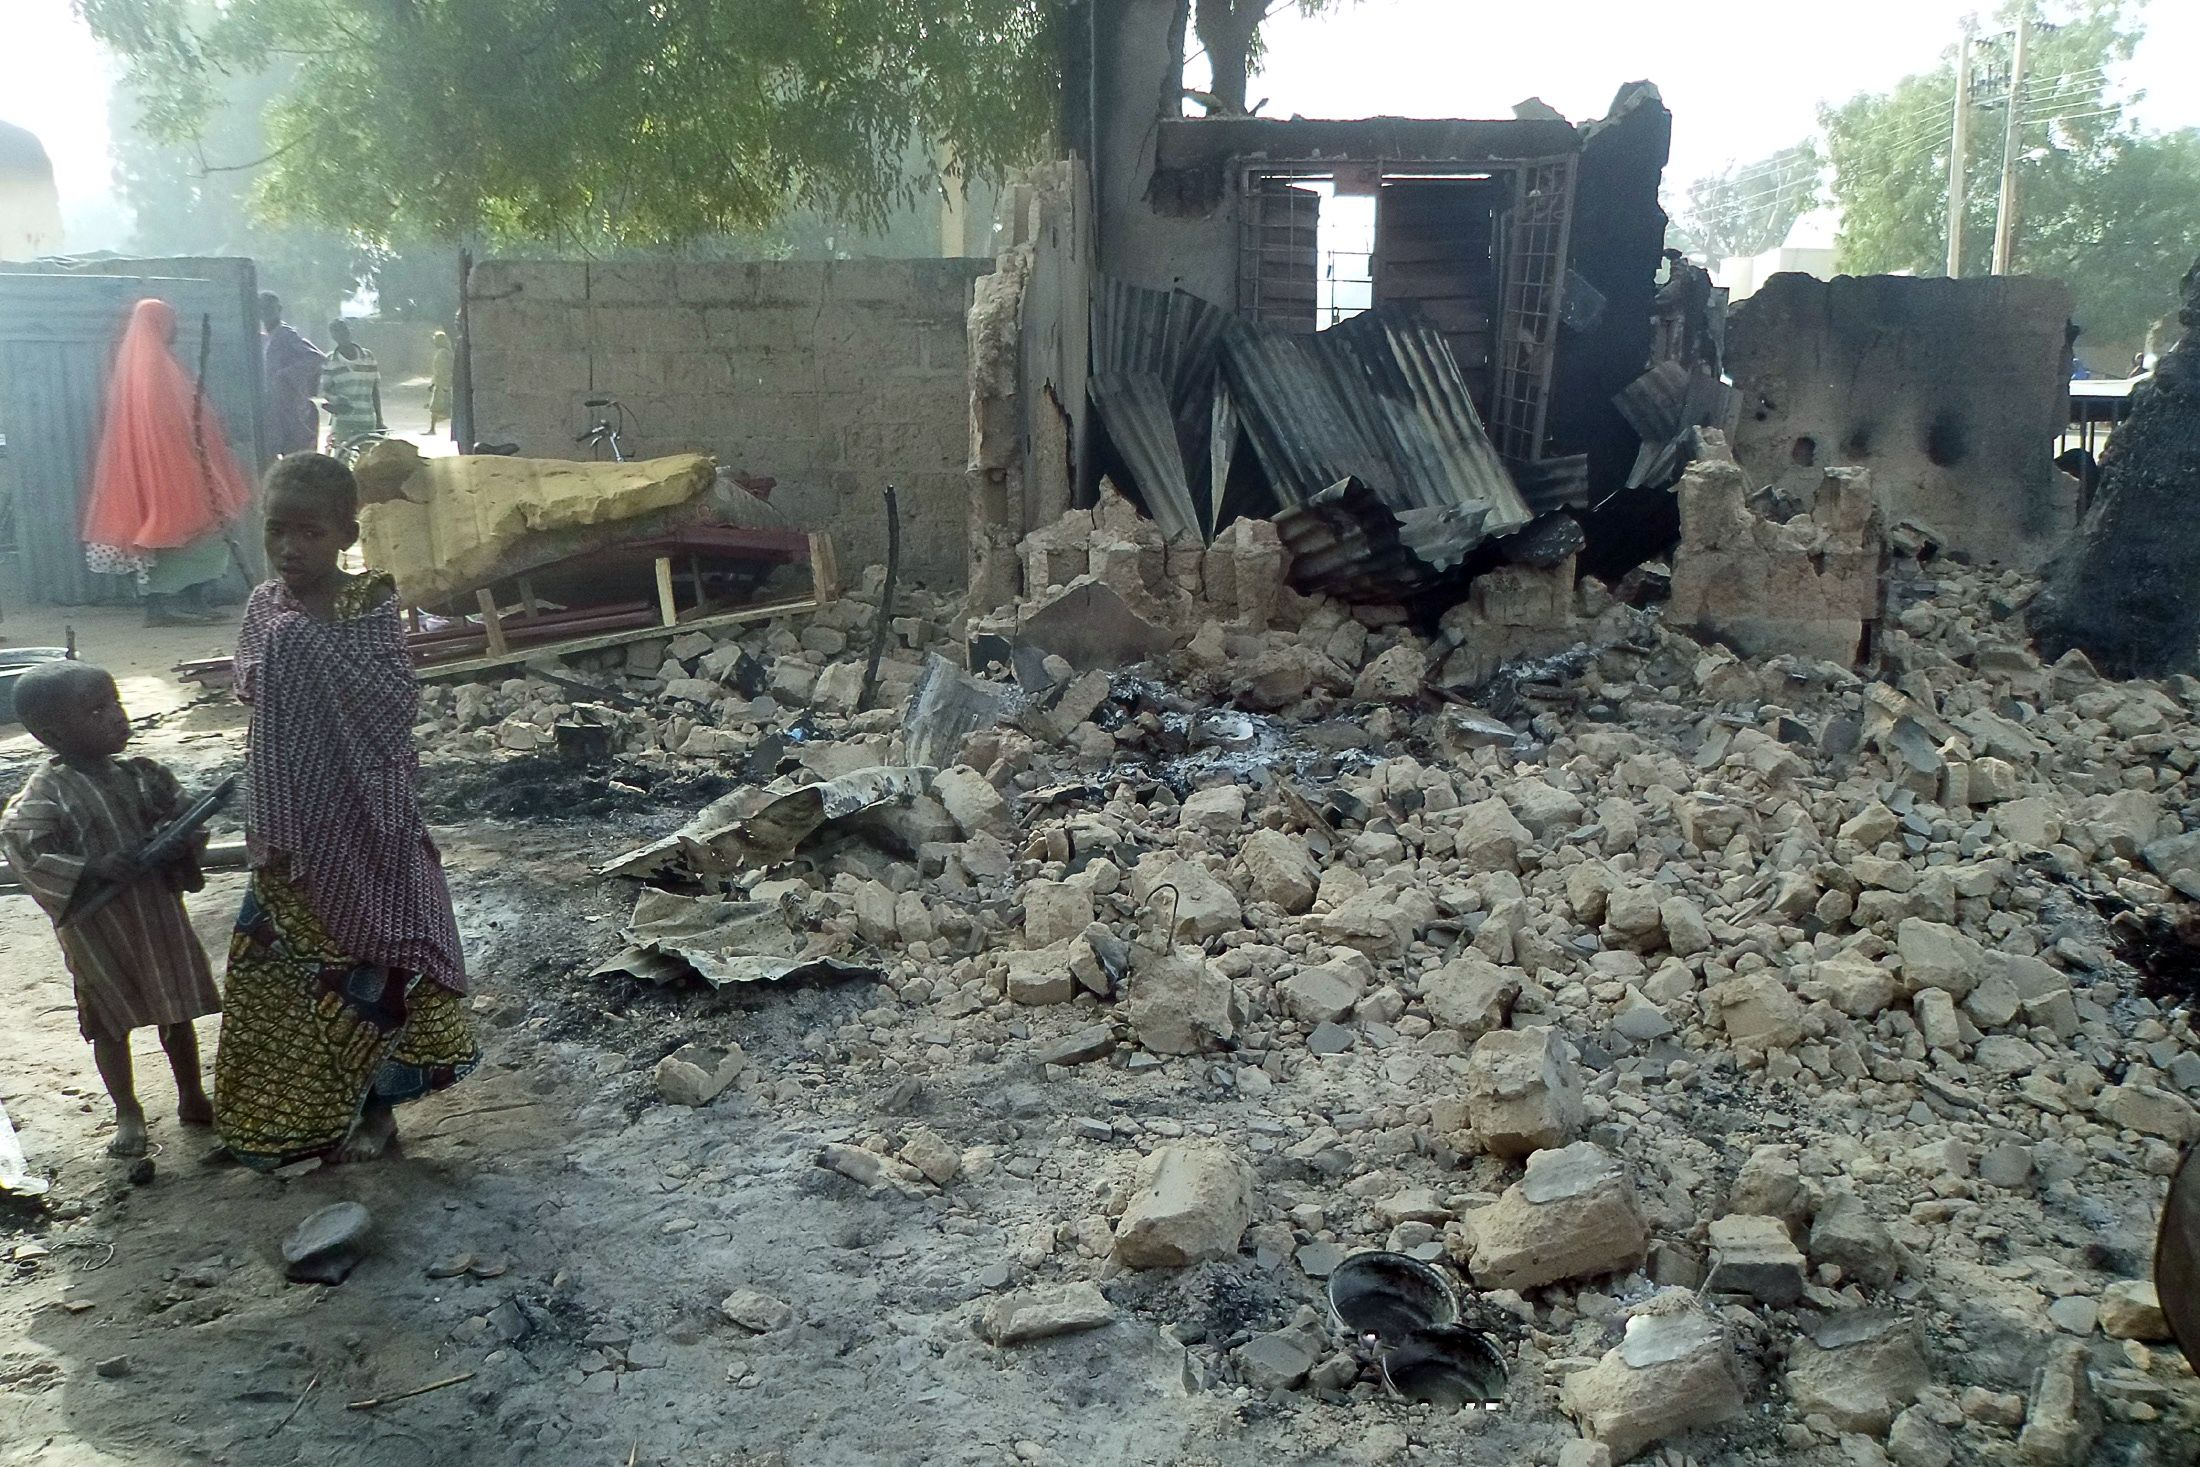 Children stand near rubble after Boko Haram attacks in Dalori, Nigeria.